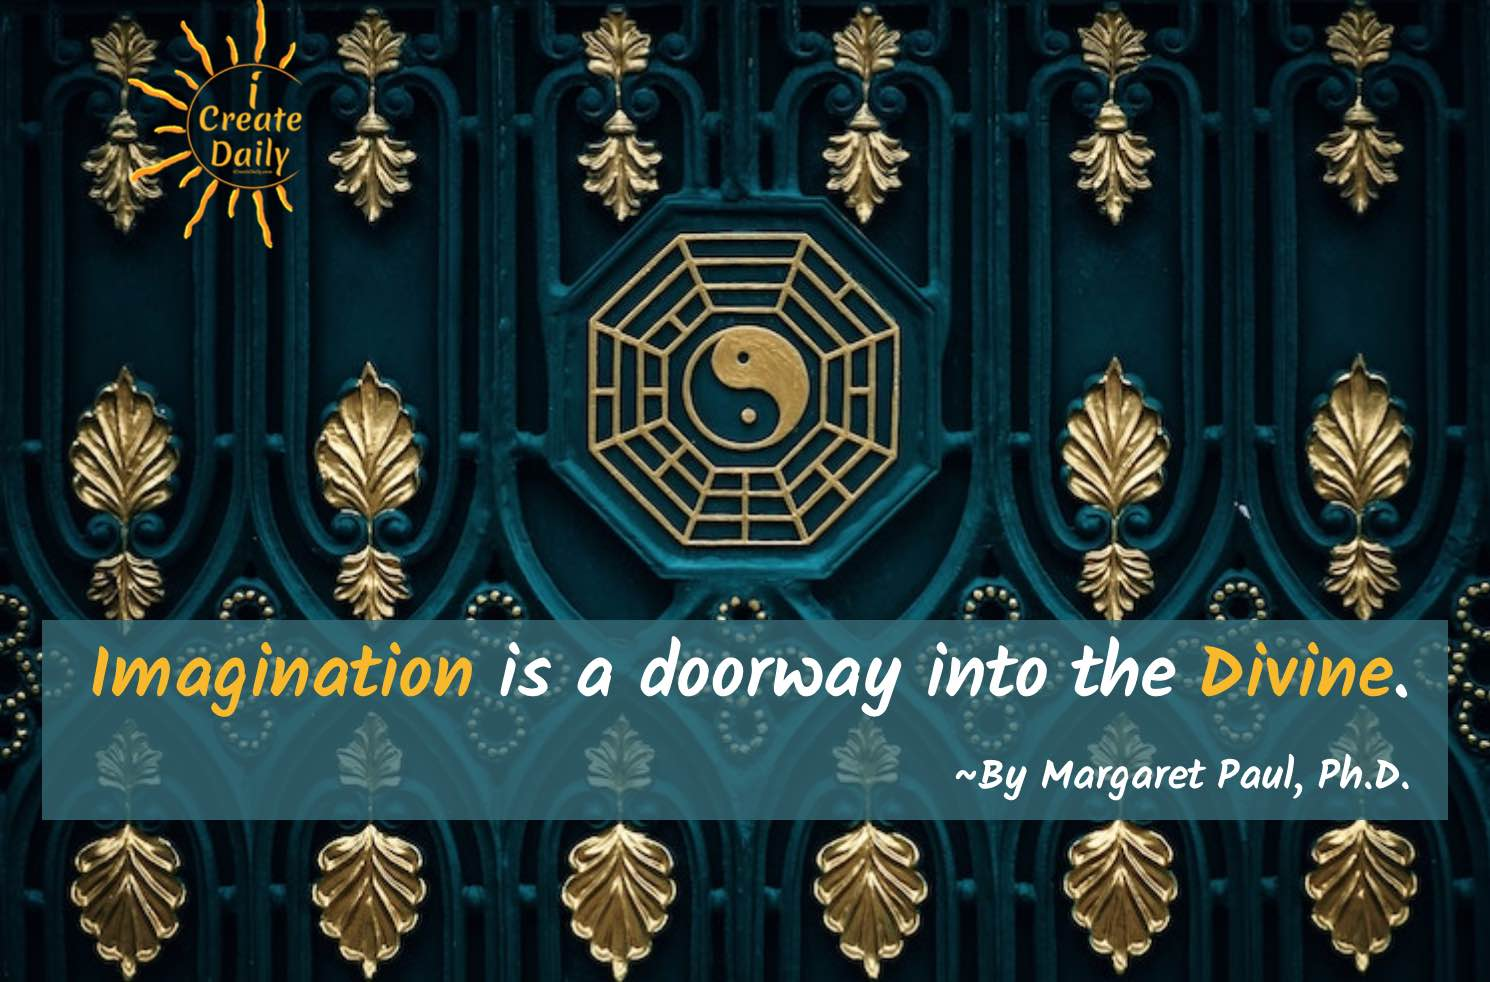 Imagination is a doorway into the Divine.~Margaret Paul, Ph.D., relationship expert, author, artist #ConsciousCreators #ConsciousCreation #Imagination #CreativeSpirituality #iCreateDaily